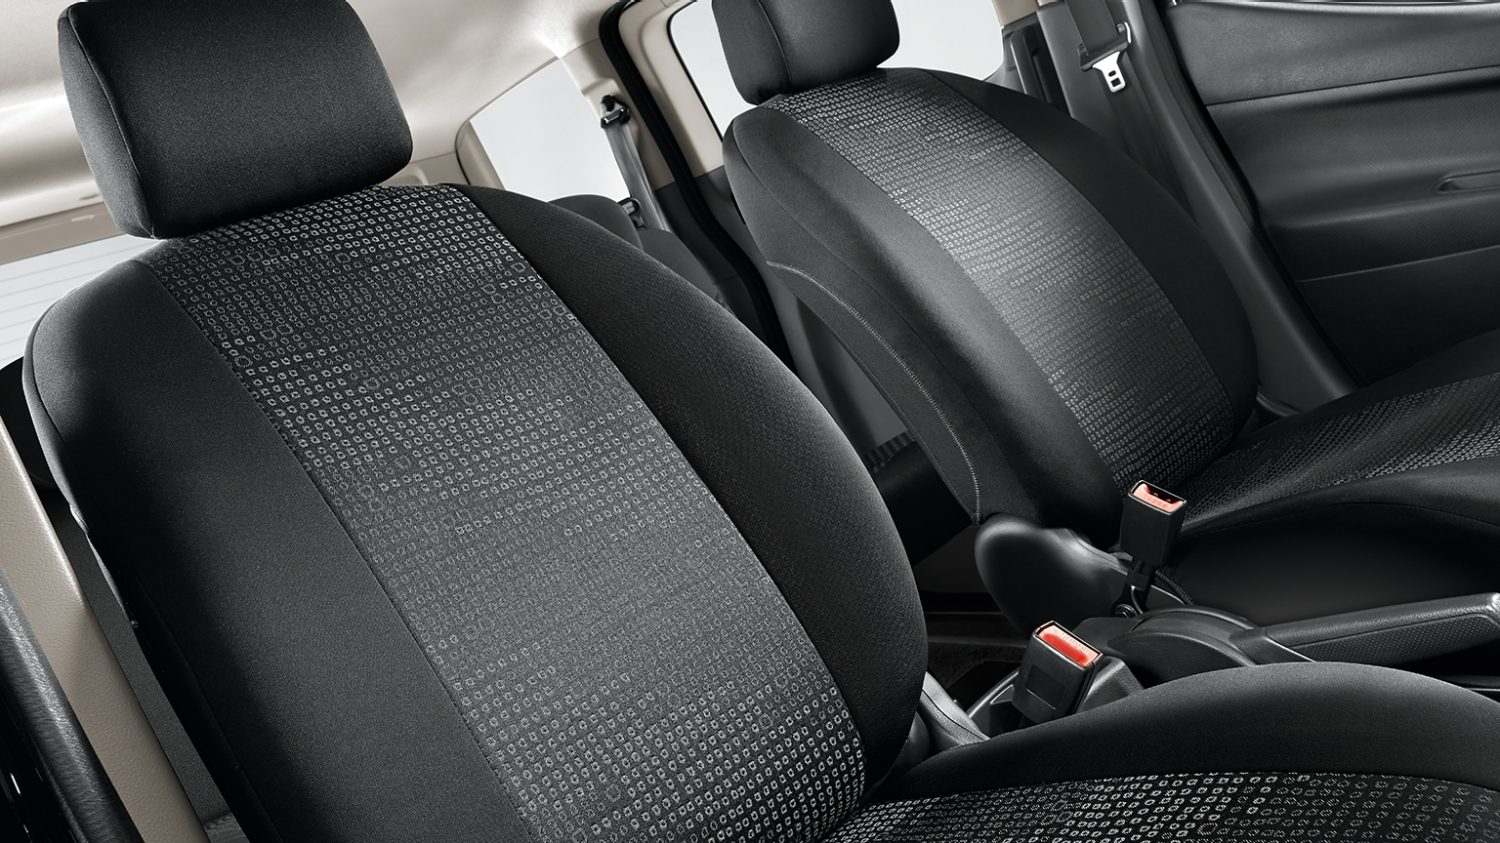 Nissan NV200 - Interior - Seat covers